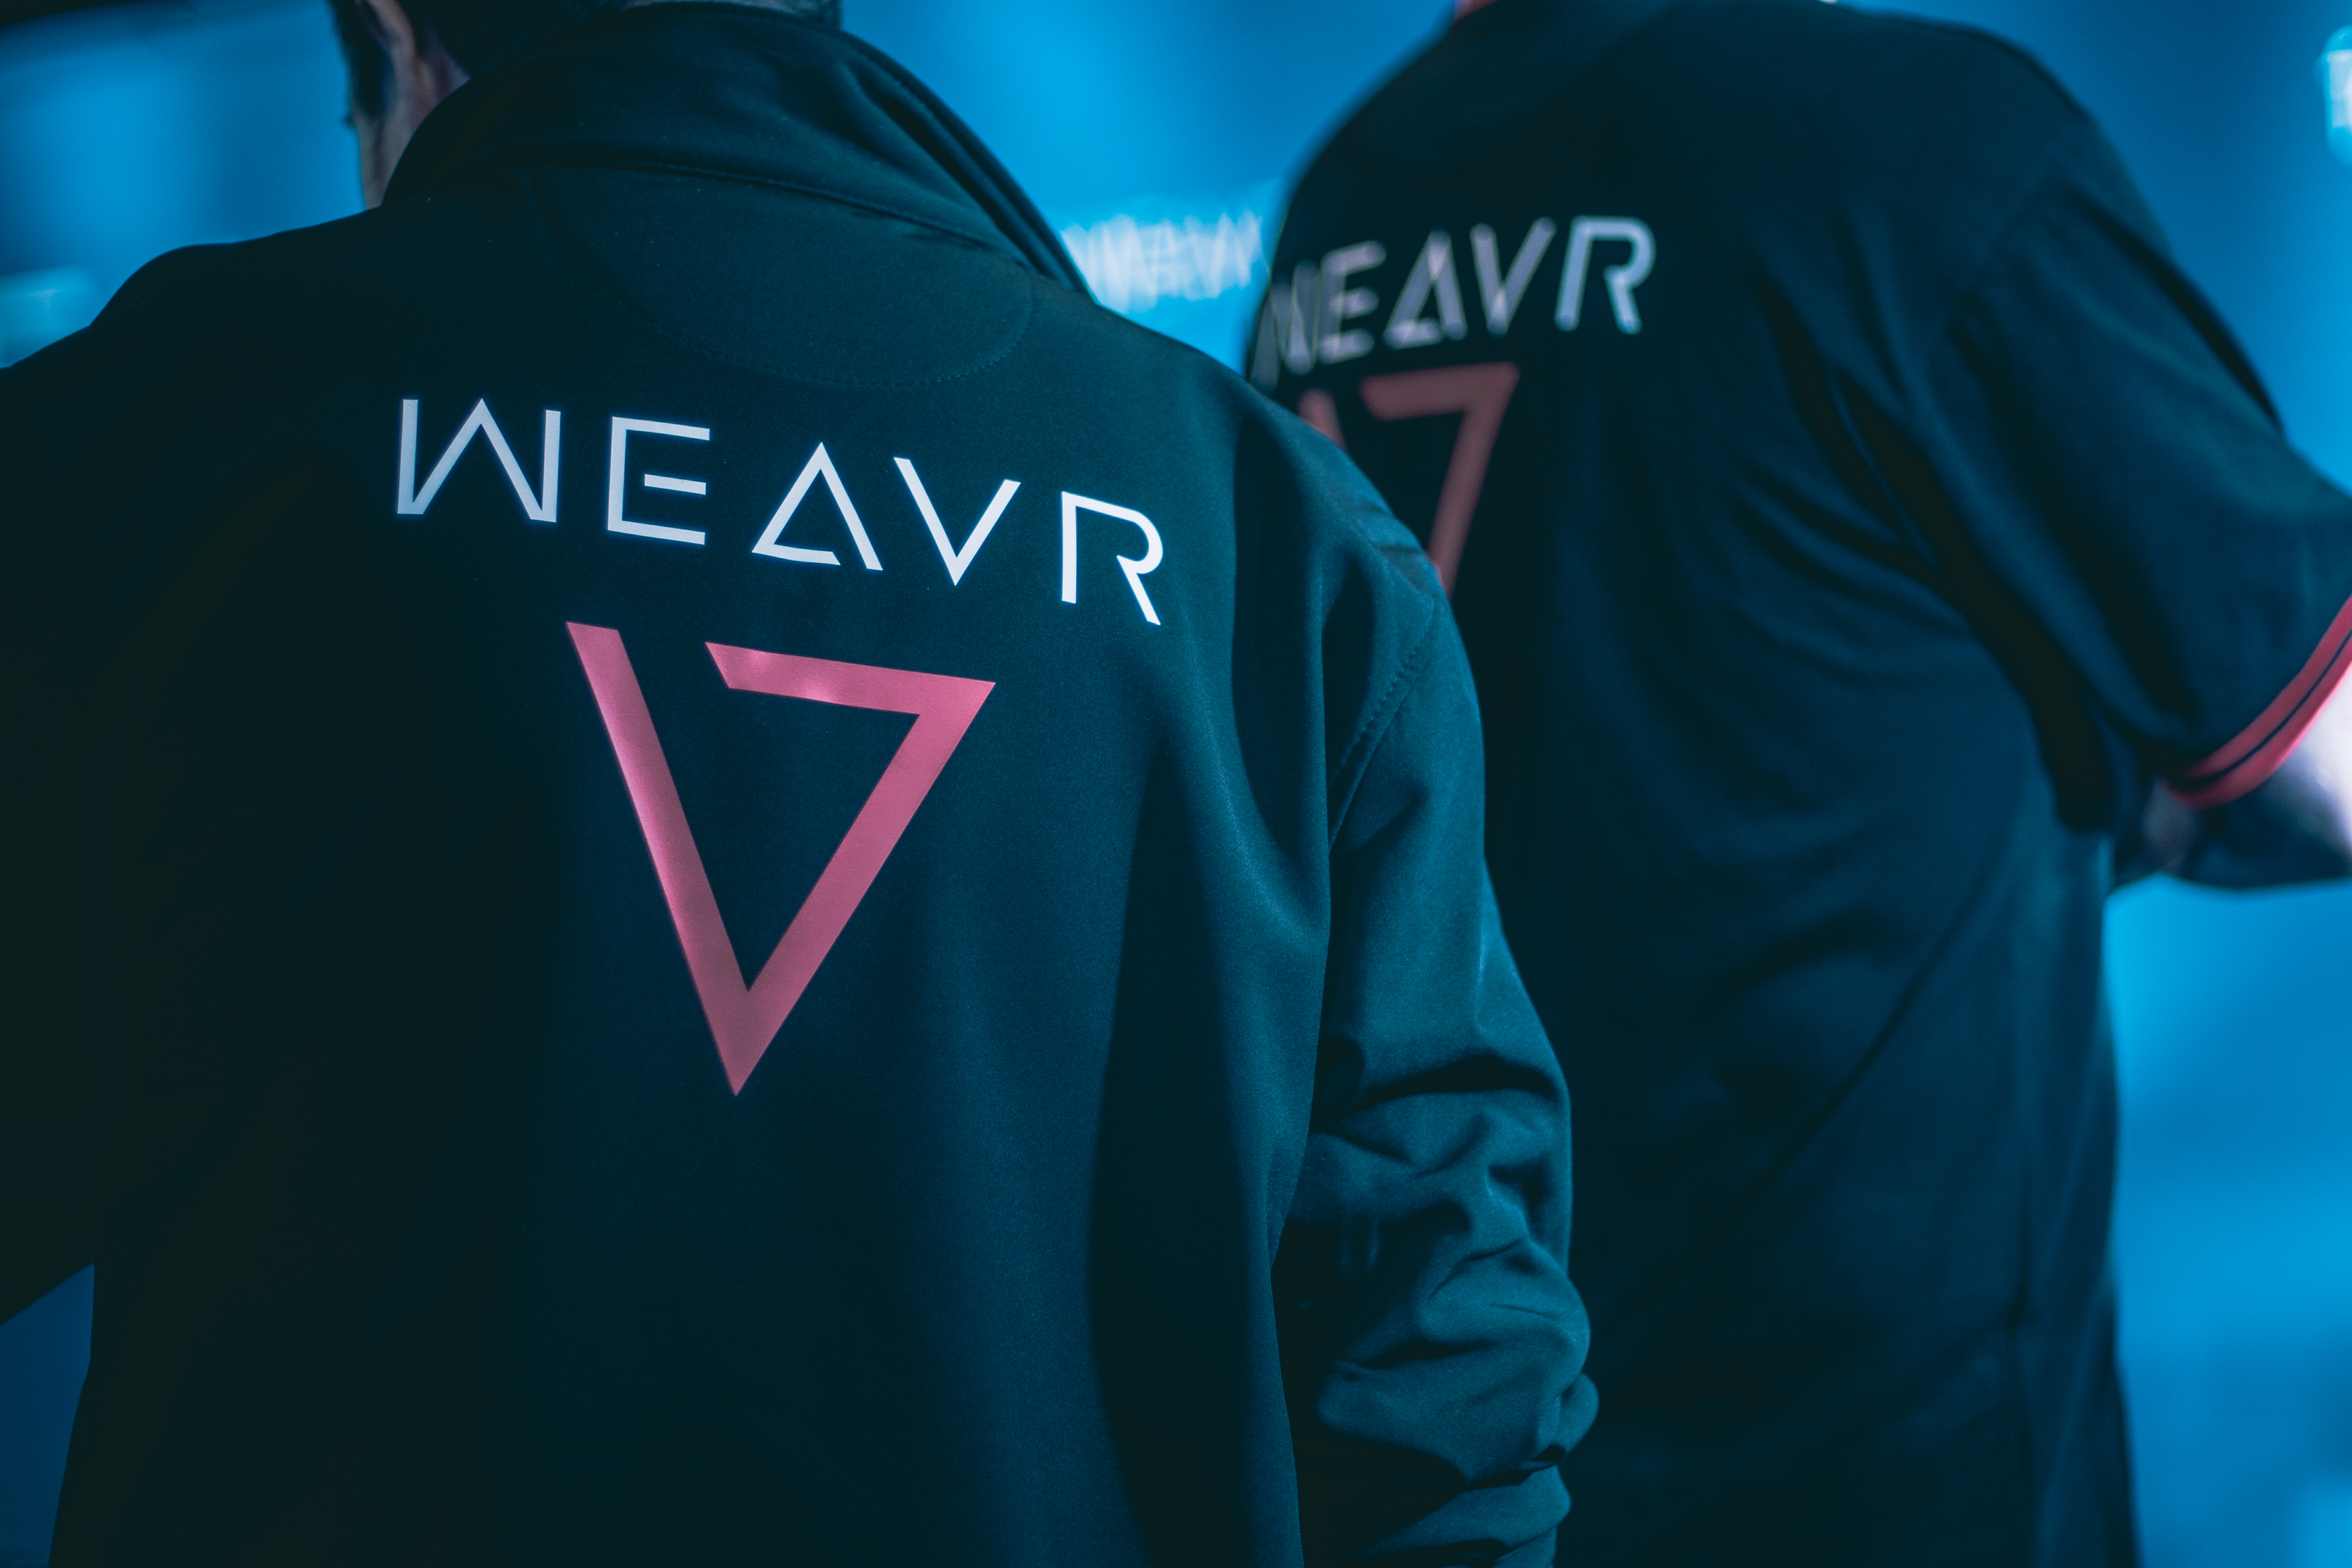 Weavr Team